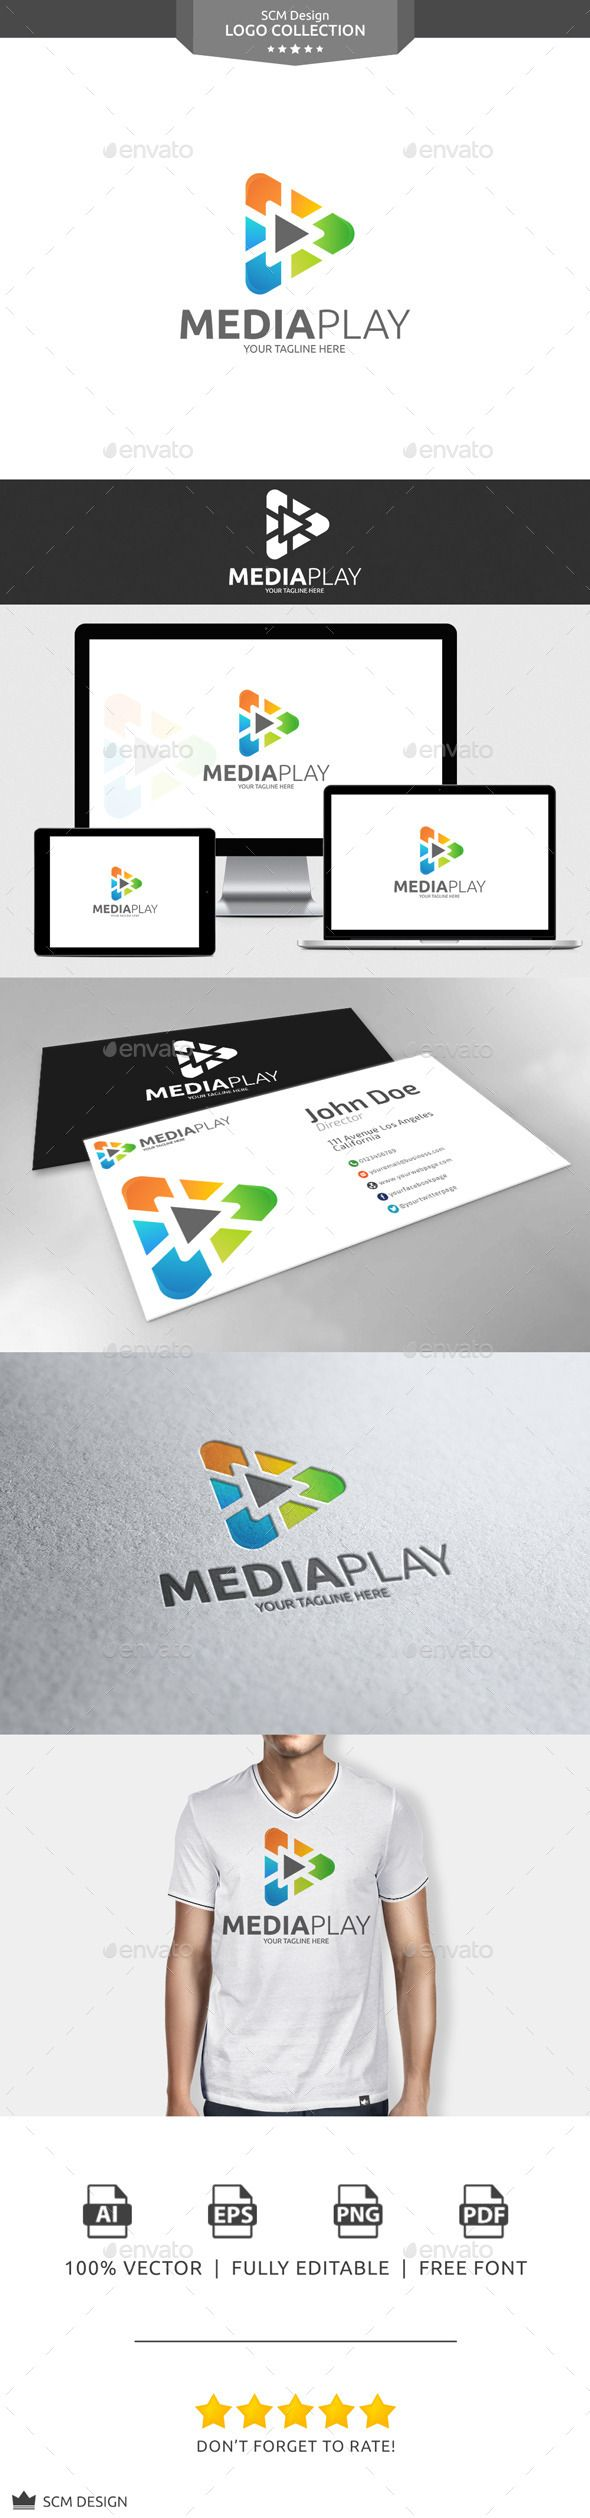 Media Play - Logo Design Template Vector #logotype Download it here: http://graphicriver.net/item/media-play-logo/10774817?s_rank=1165?ref=nexion